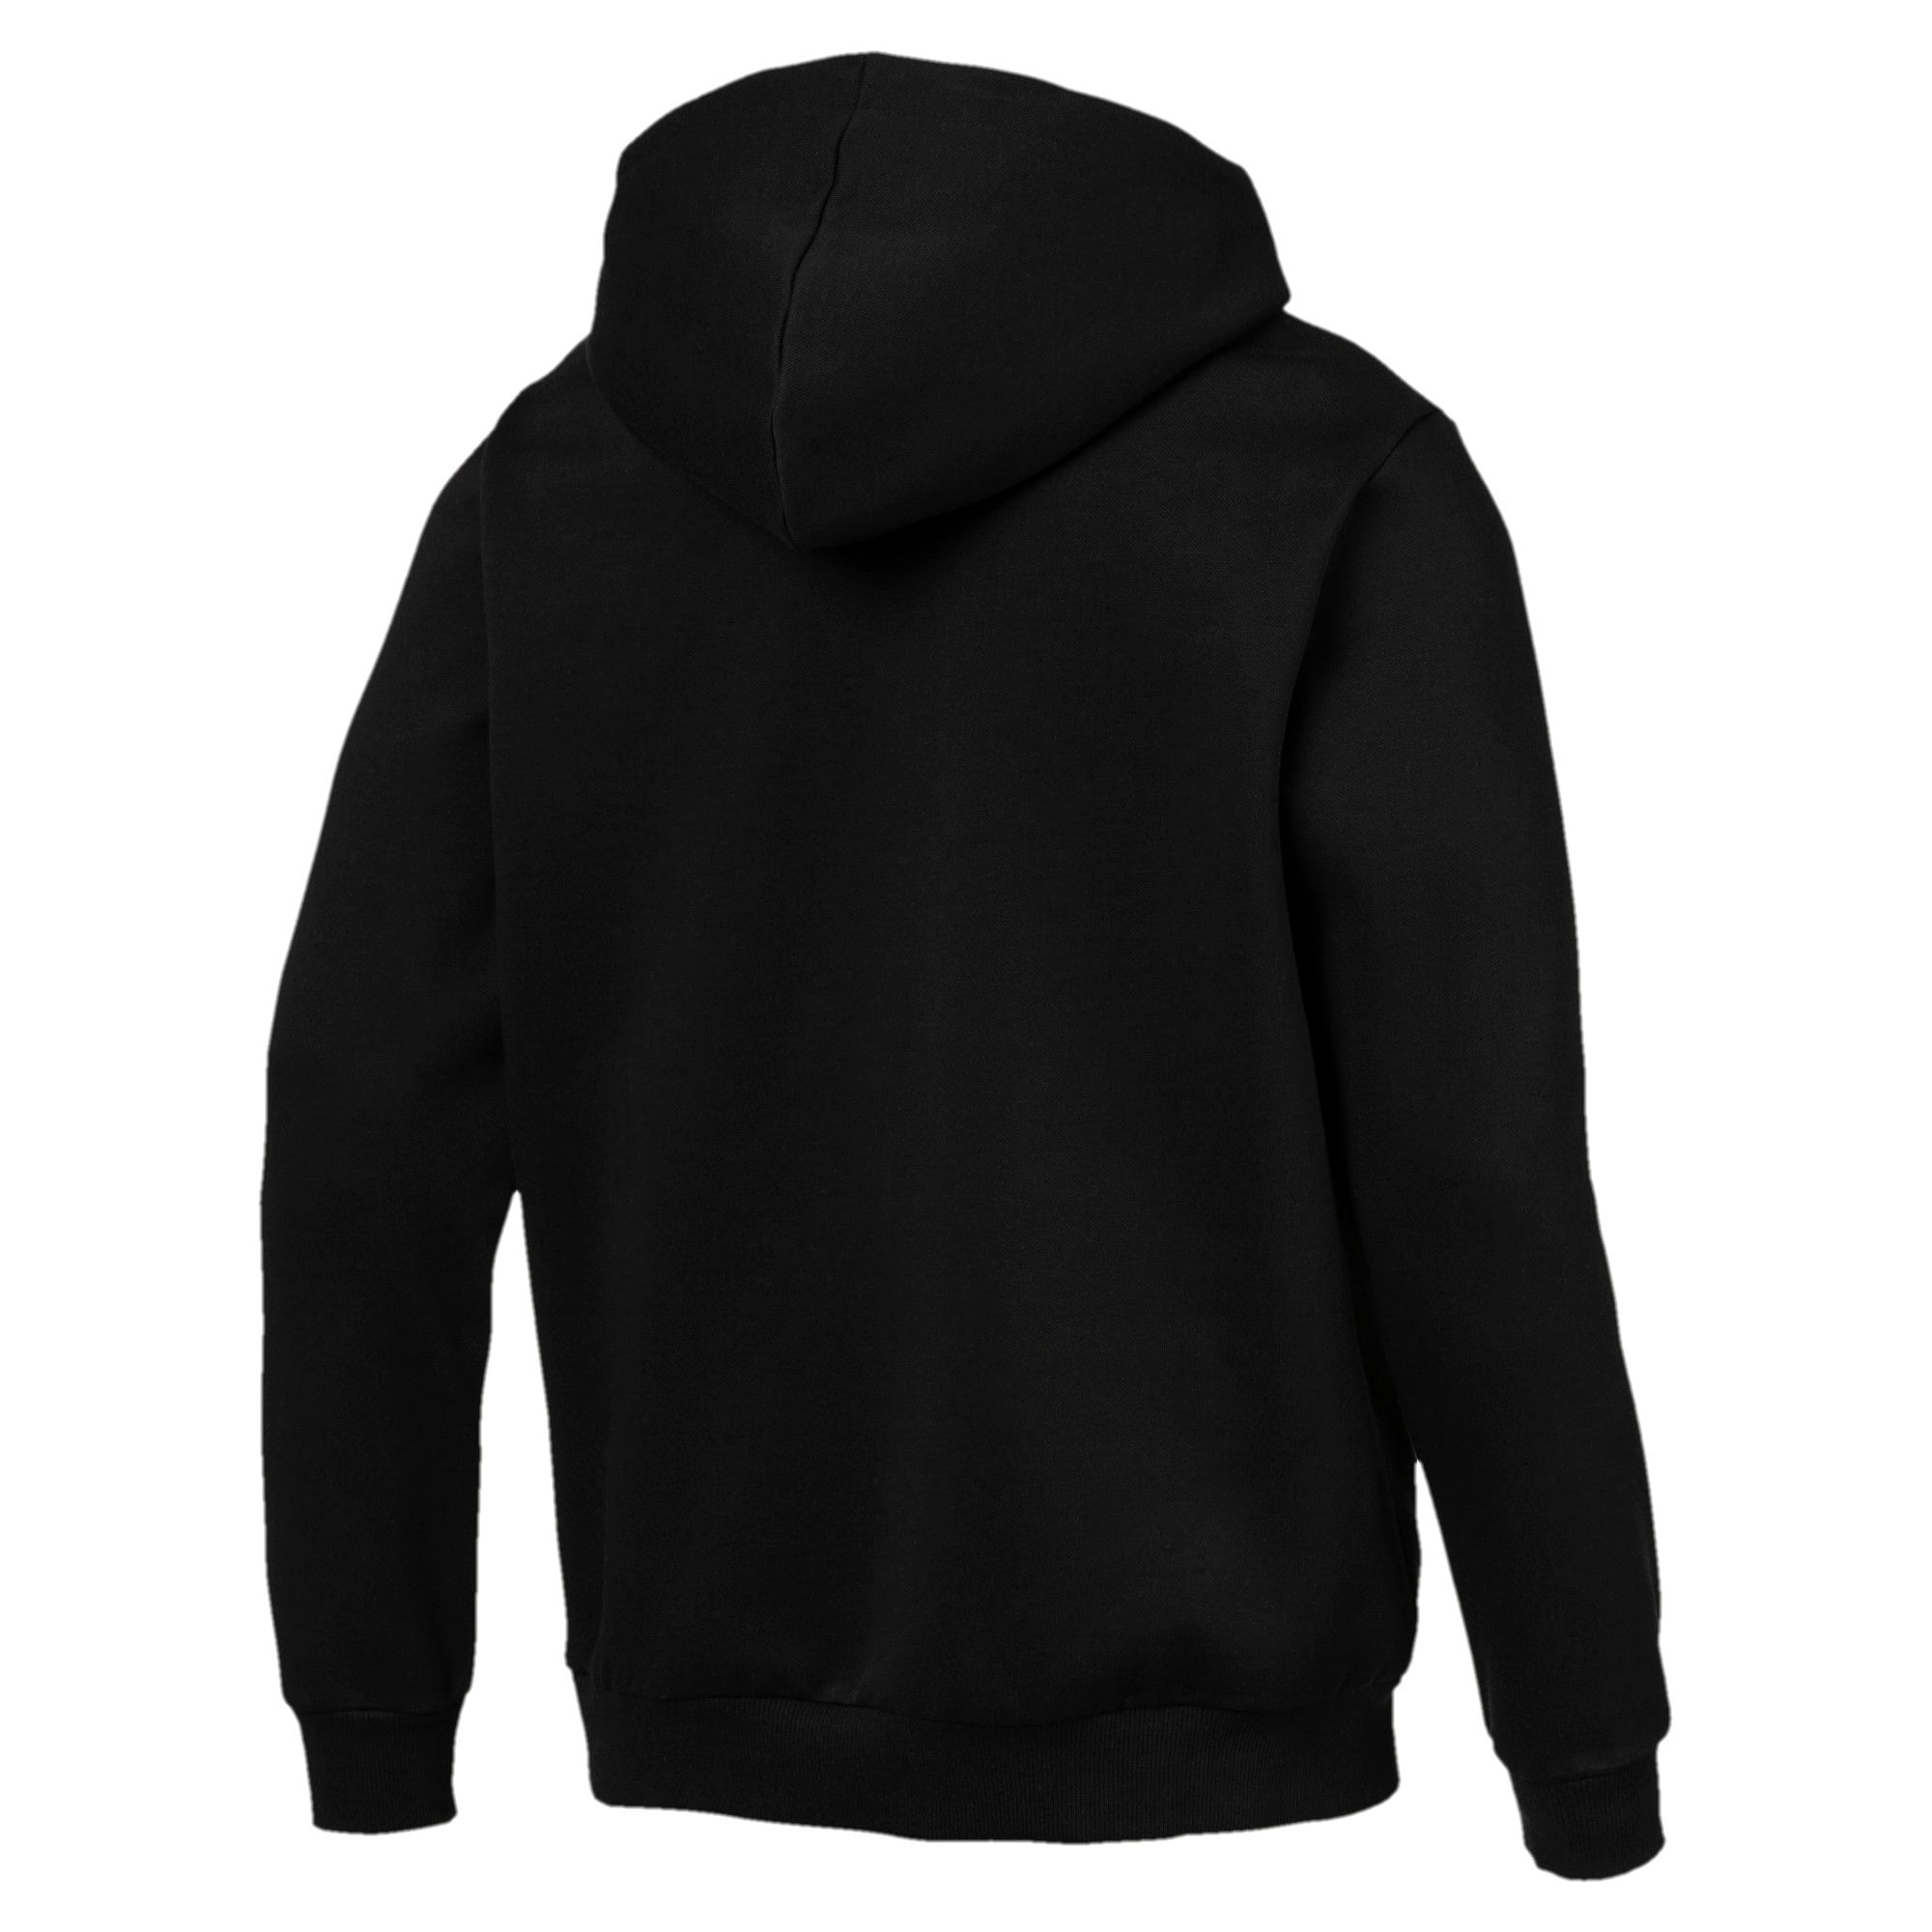 Thumbnail 3 of Essentials Men's Hooded Fleece Jacket, Puma Black, medium